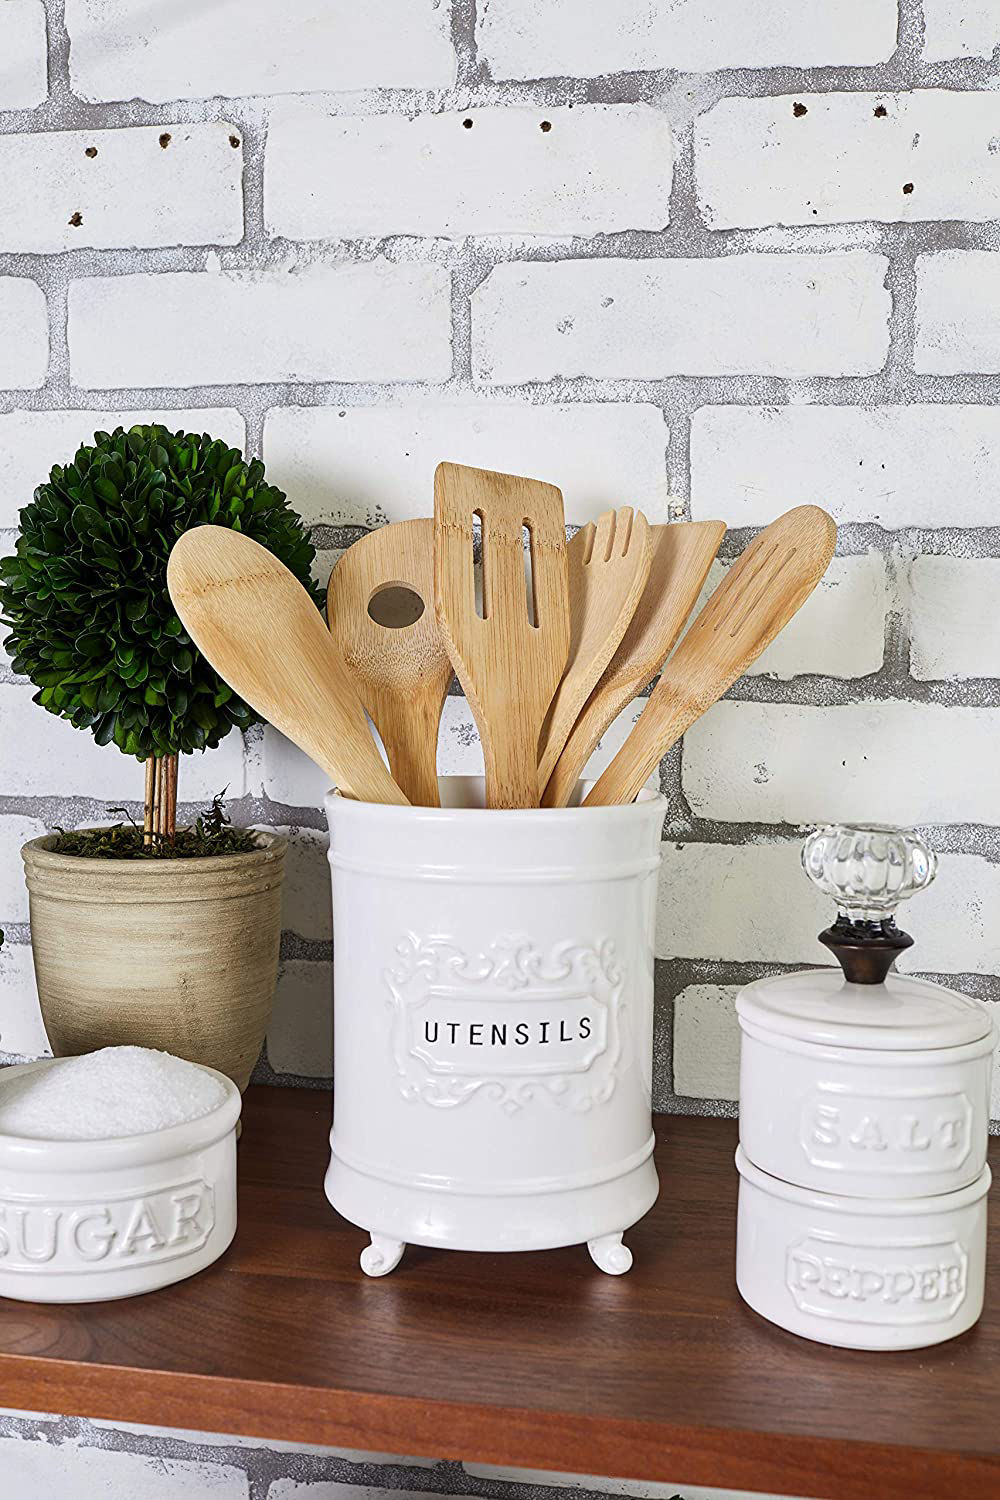 Circa Utensil Holder by Mudpie